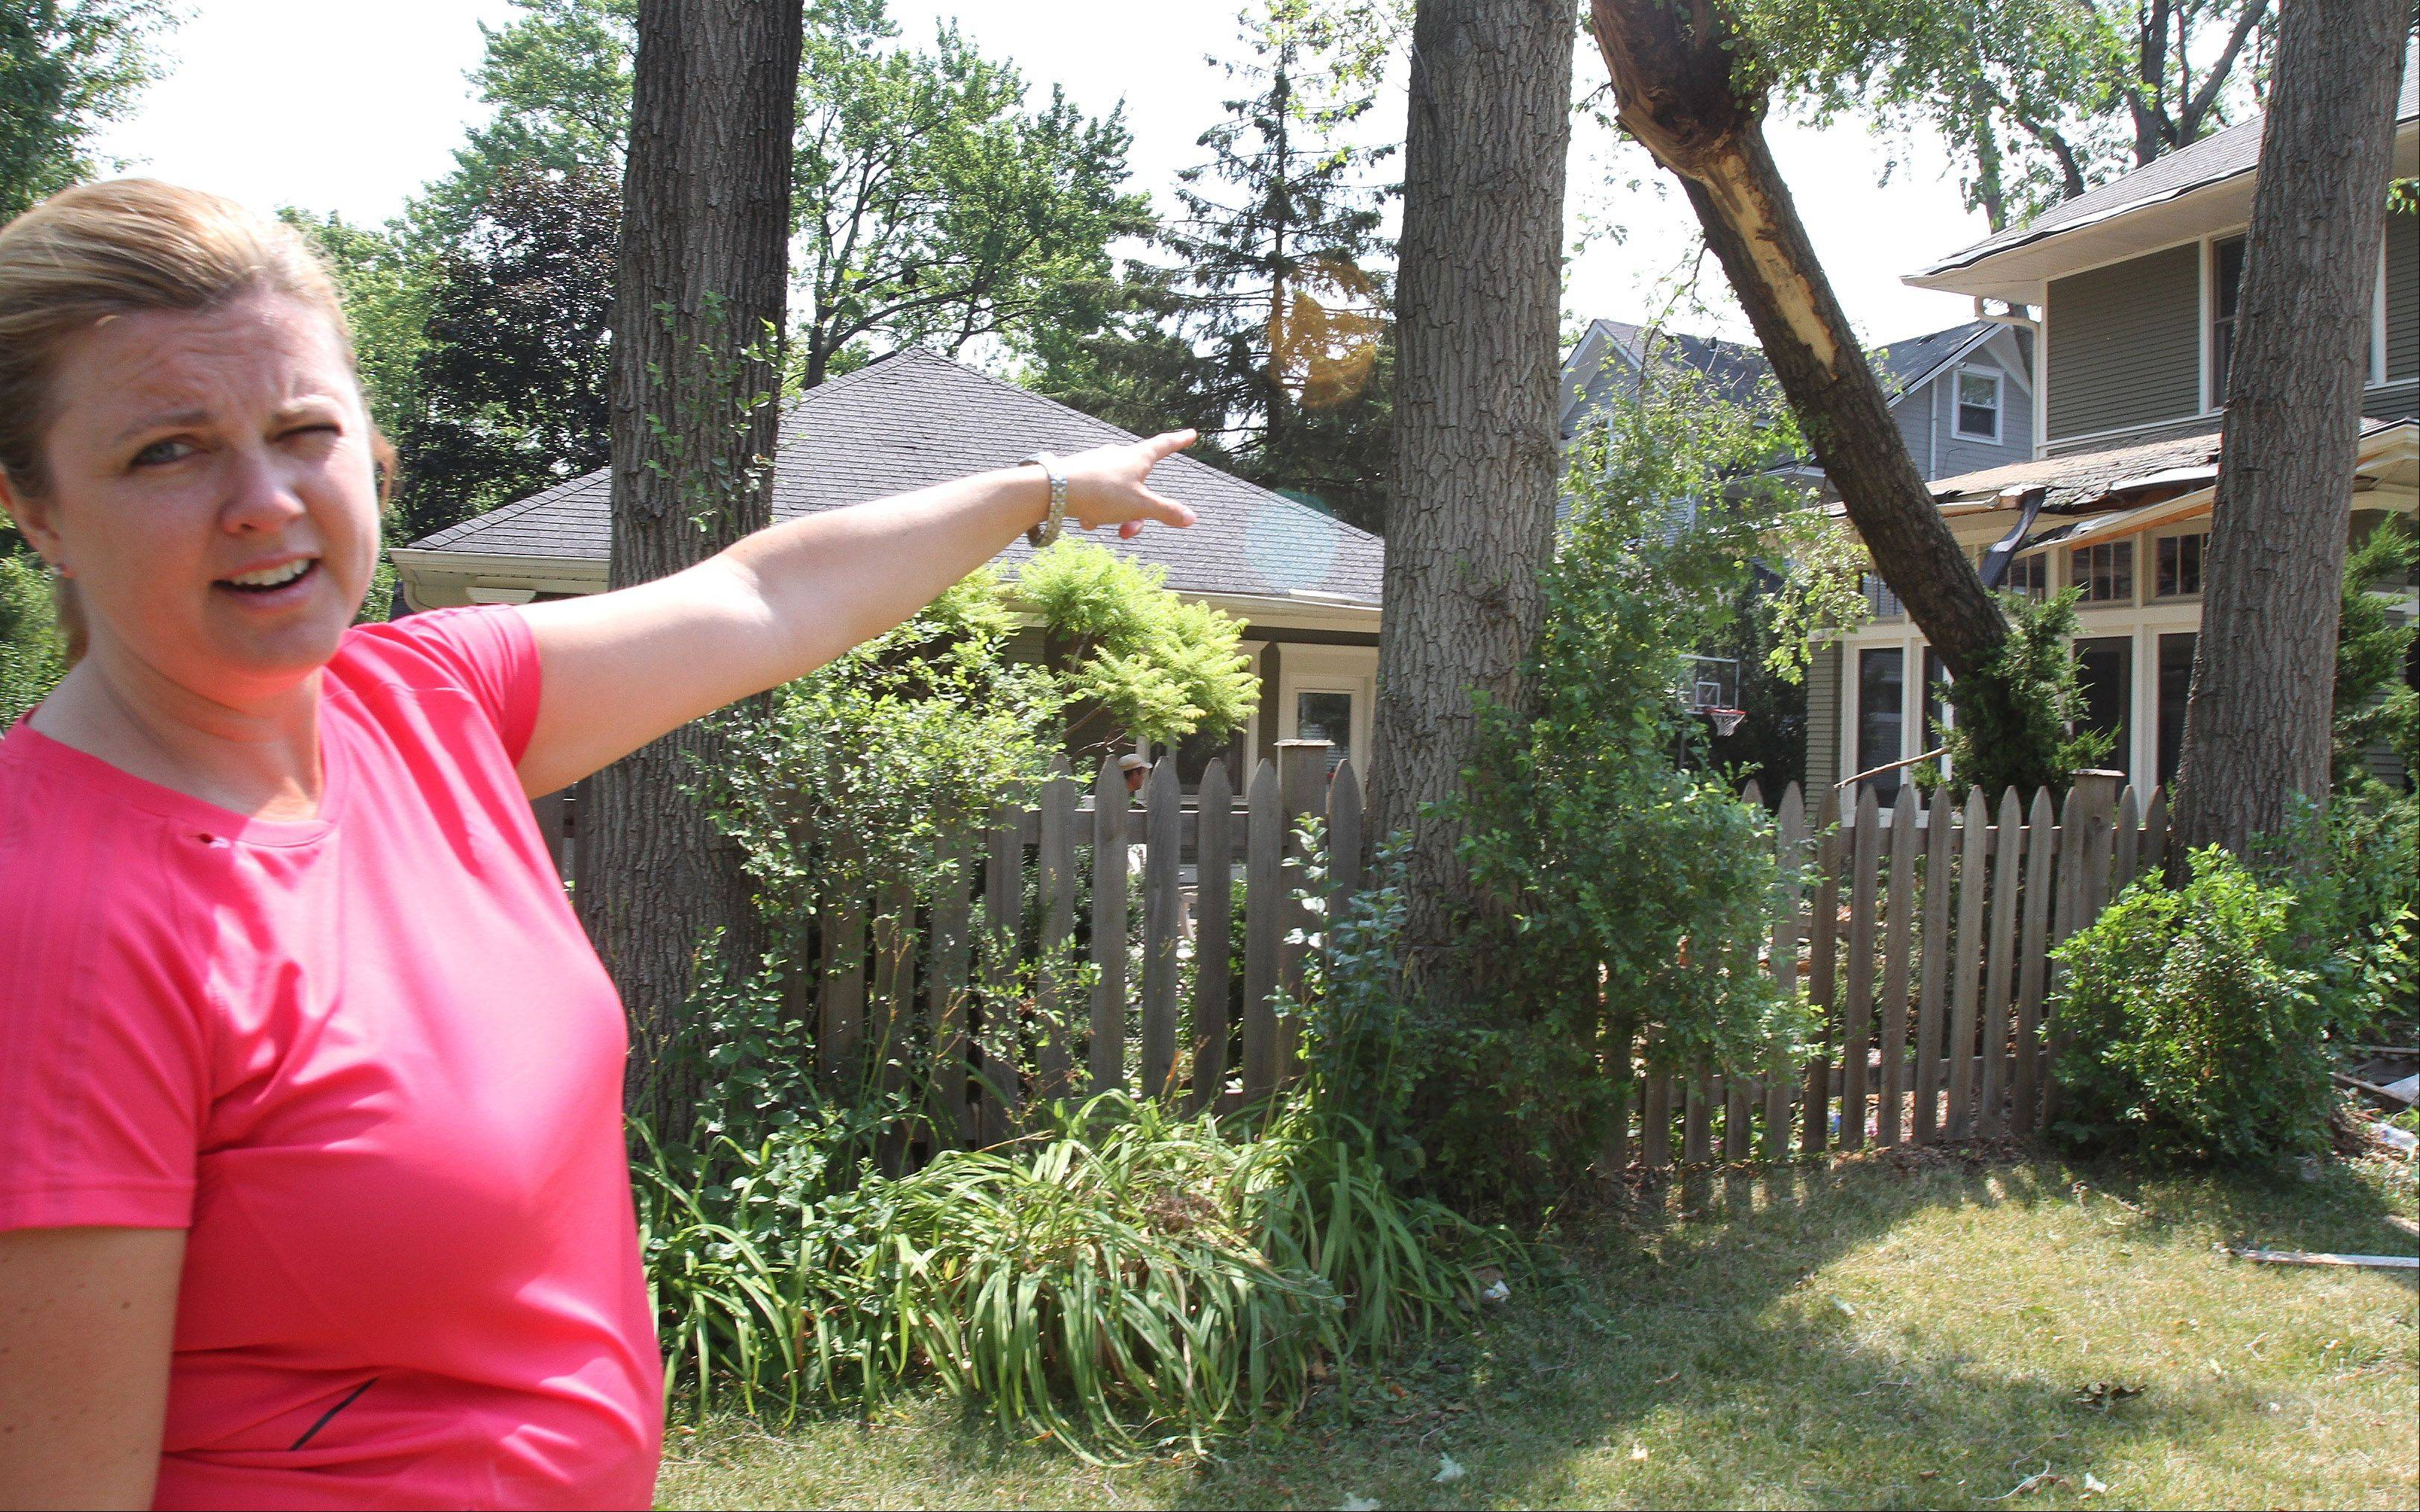 Sarah Bowers points to damage to her house on the 200 block of West Jefferson in Wheaton in the wake of Sunday's storm. She was not home at the time, but her husband and son were. They were able to get it cleaned up quickly on Monday morning.